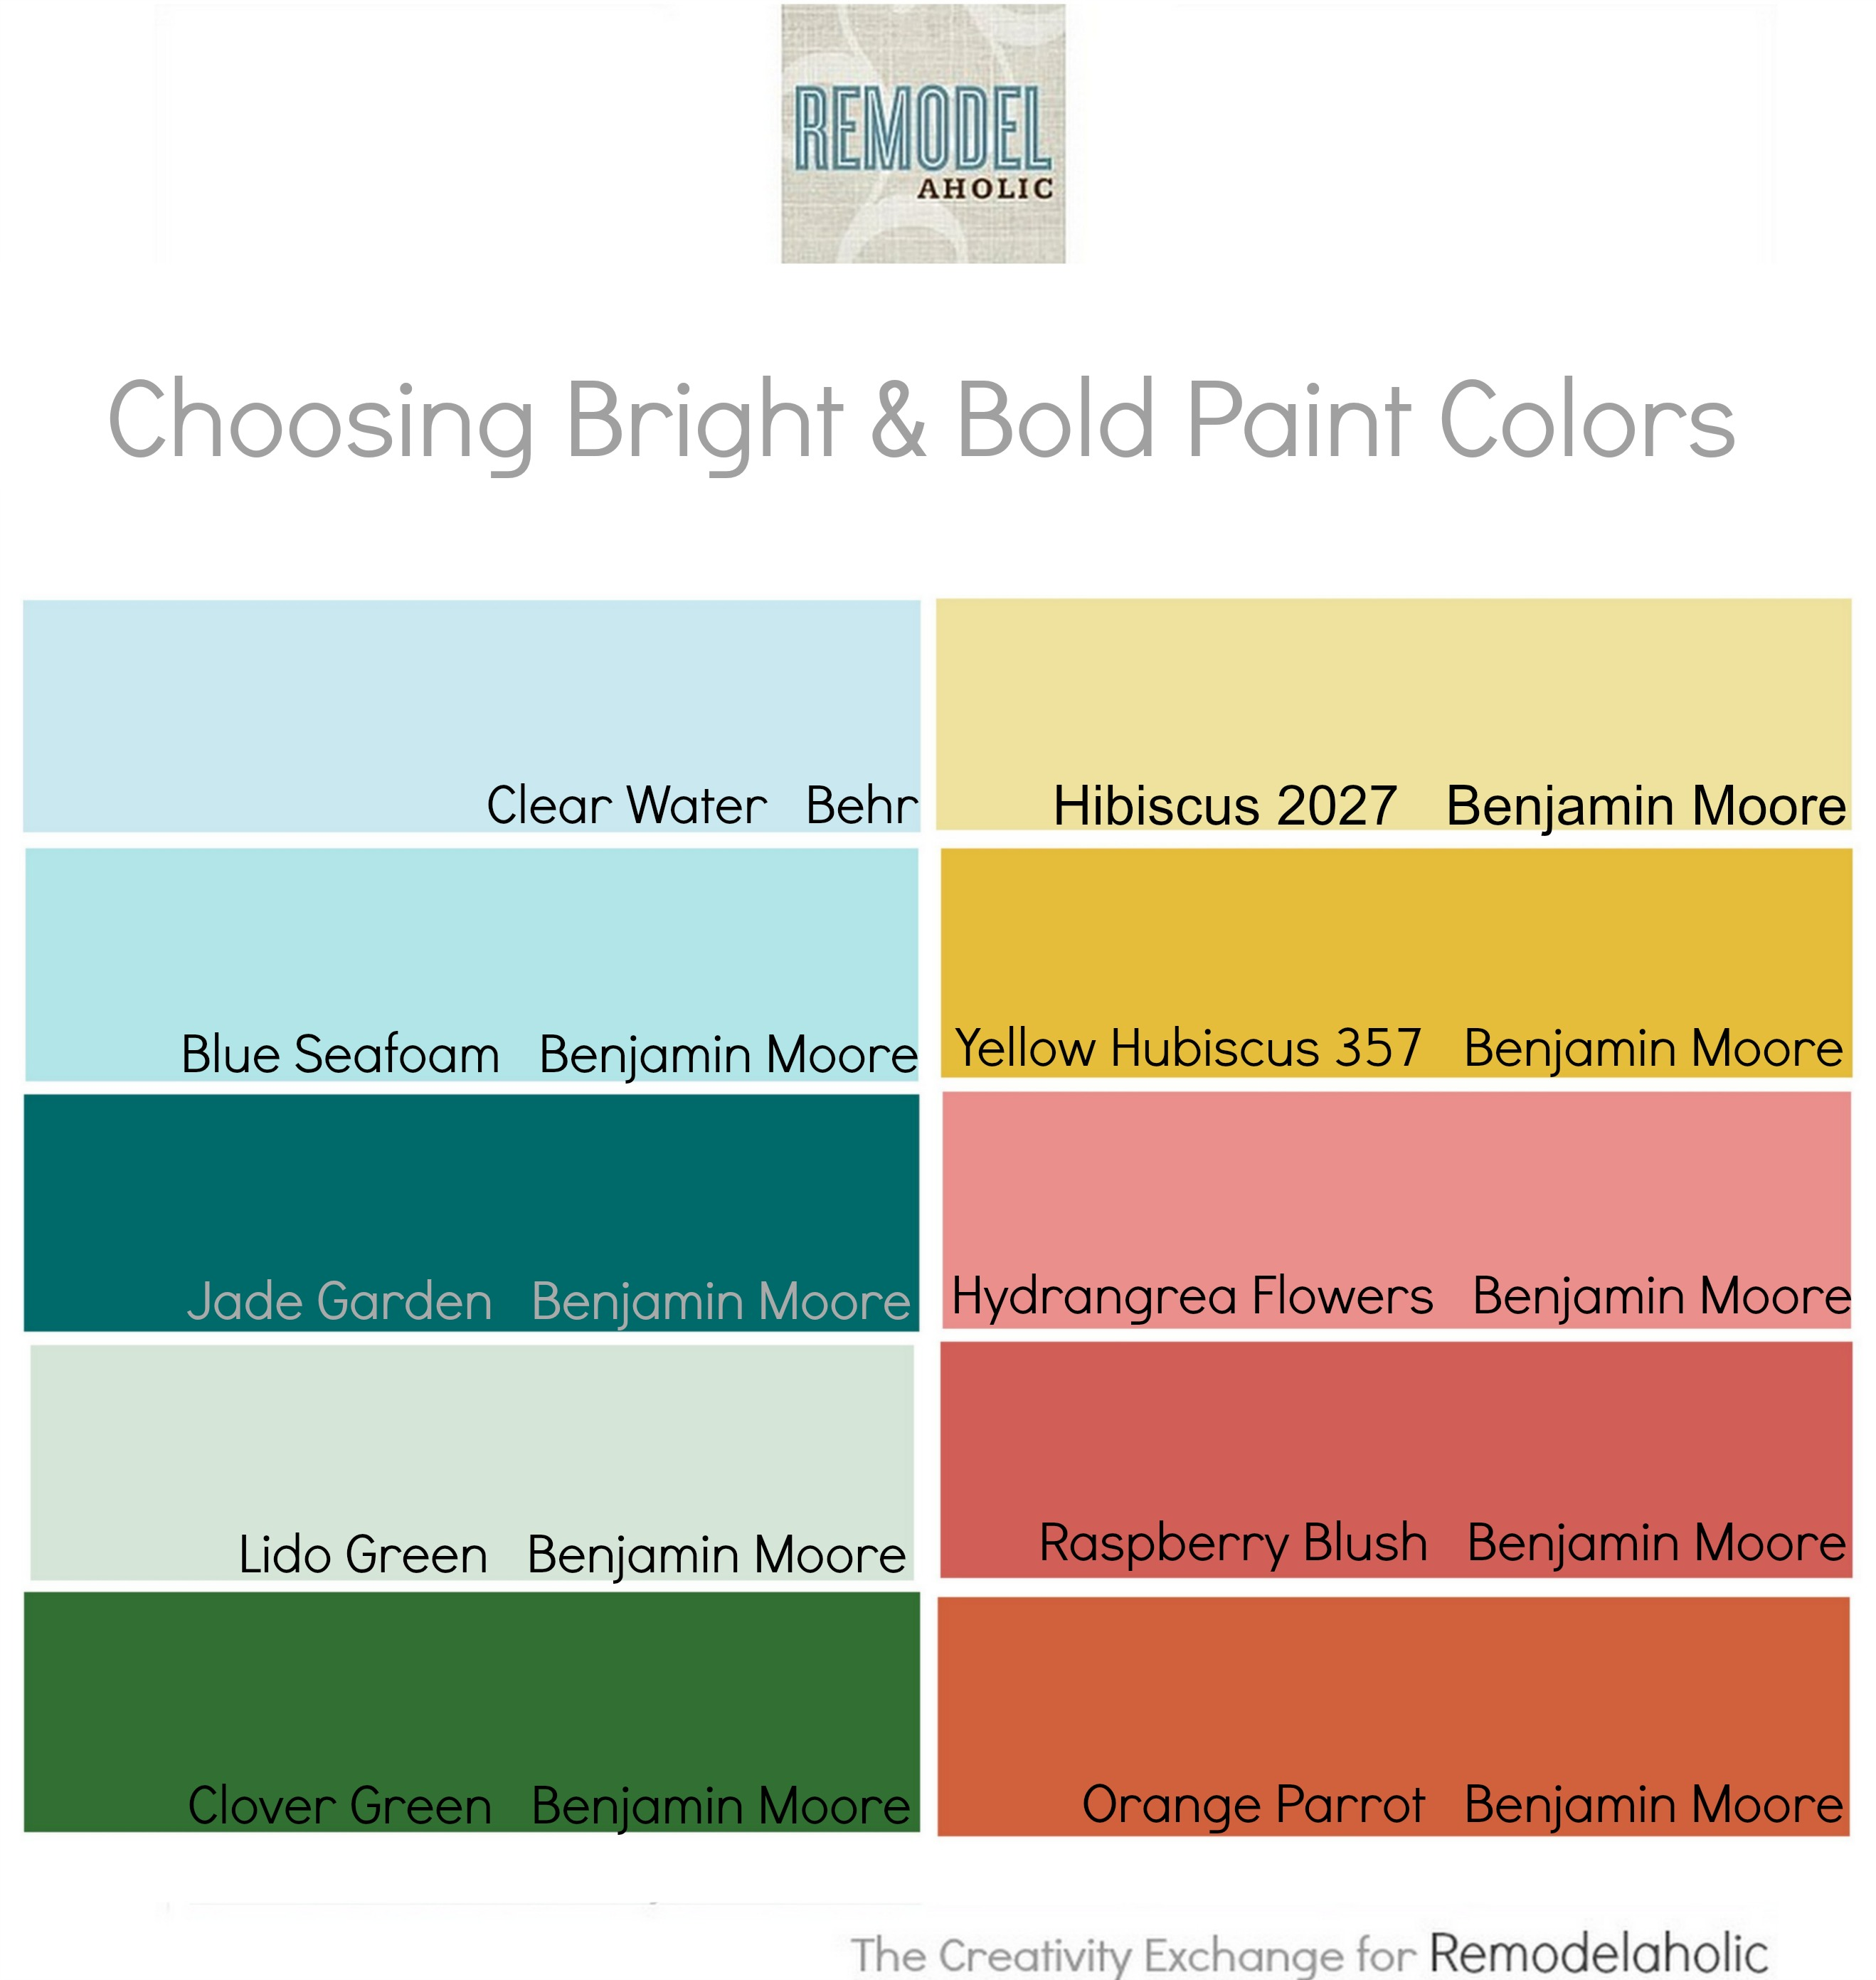 Tips For How To Choose Bright And Bold Paint Colors {Remodelaholic}